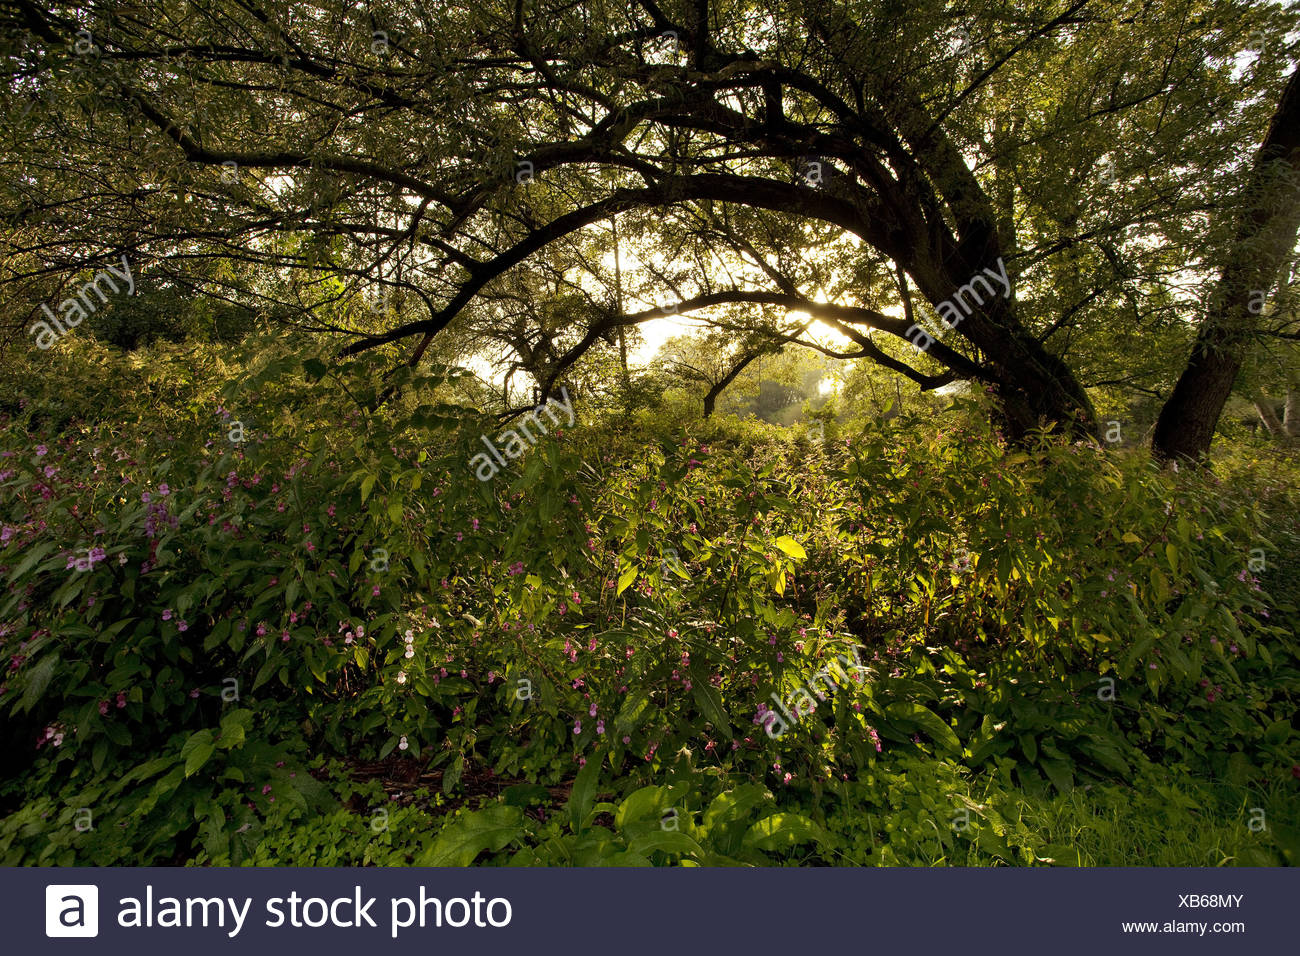 Himalayan balsam, Indian balsam, red jewelweed, ornamental jewelweed, policeman's helmet (Impatiens glandulifera), sunrise in Ruhr valley, Germany, North Rhine-Westphalia, Ruhr Area, Wetter/Ruhr - Stock Image